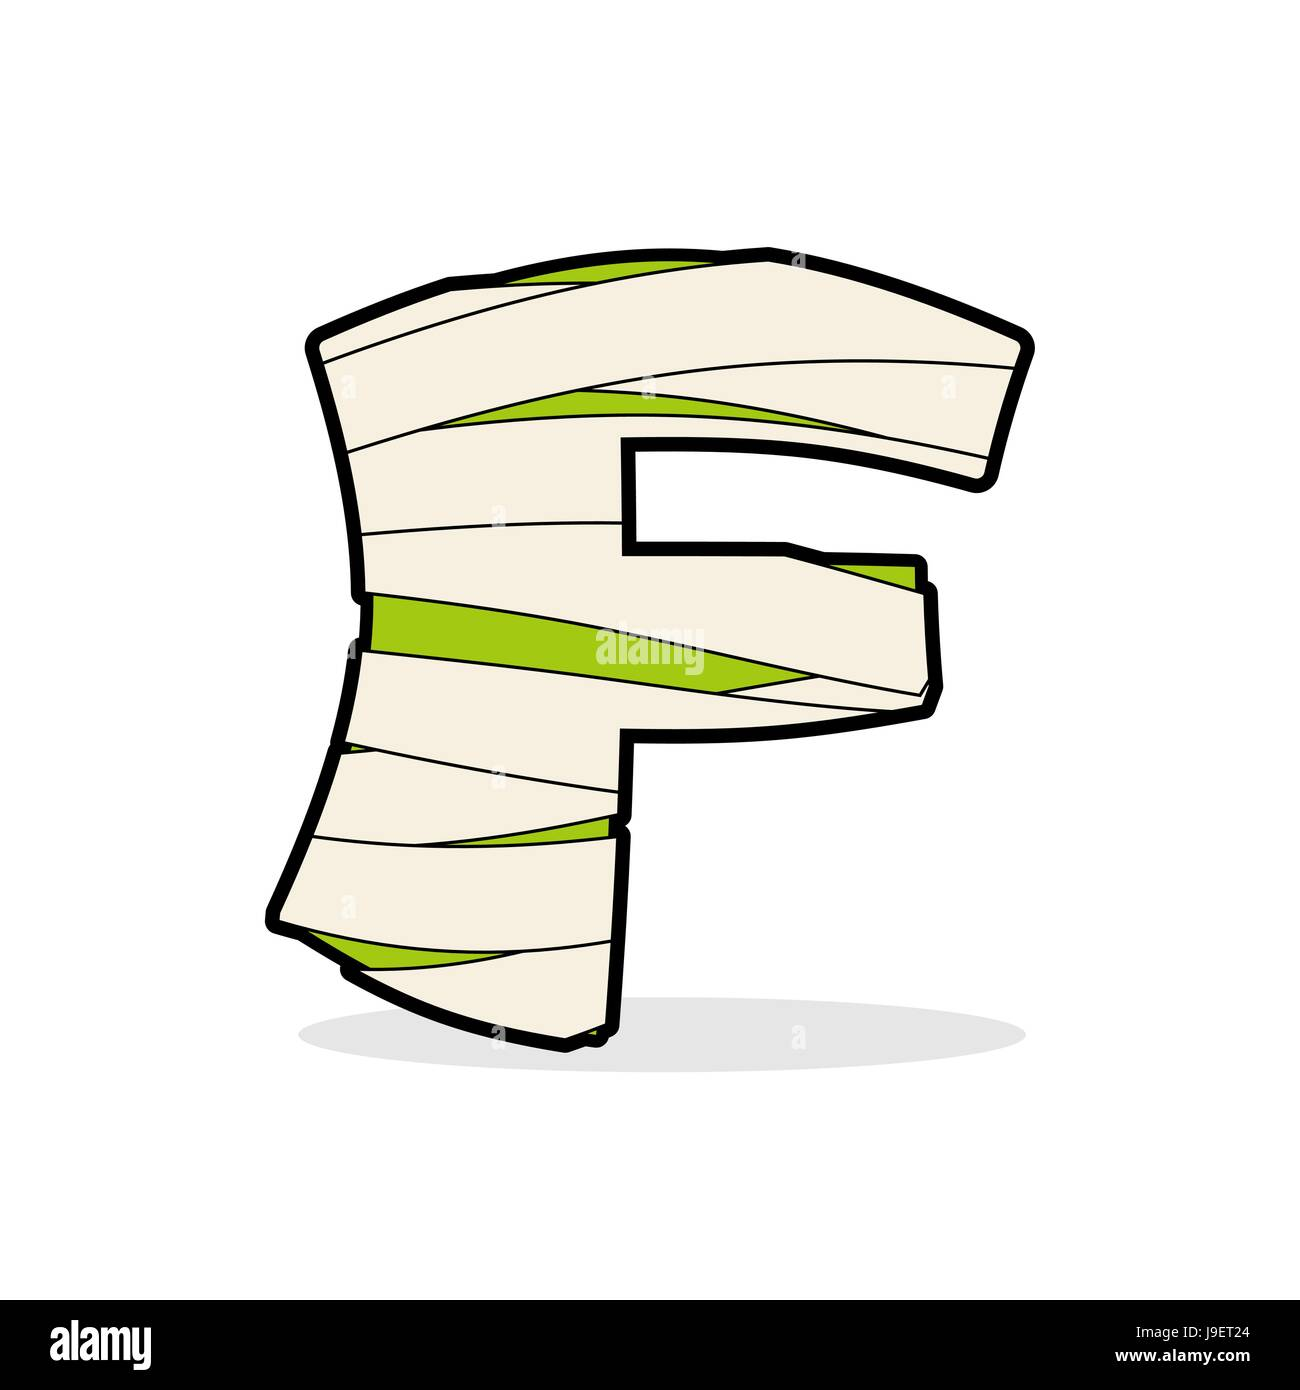 Letter f egyptian zombies abc sign coiled medical bandages monster letter f egyptian zombies abc sign coiled medical bandages monster template elements alphabet scary concept type as logo maxwellsz